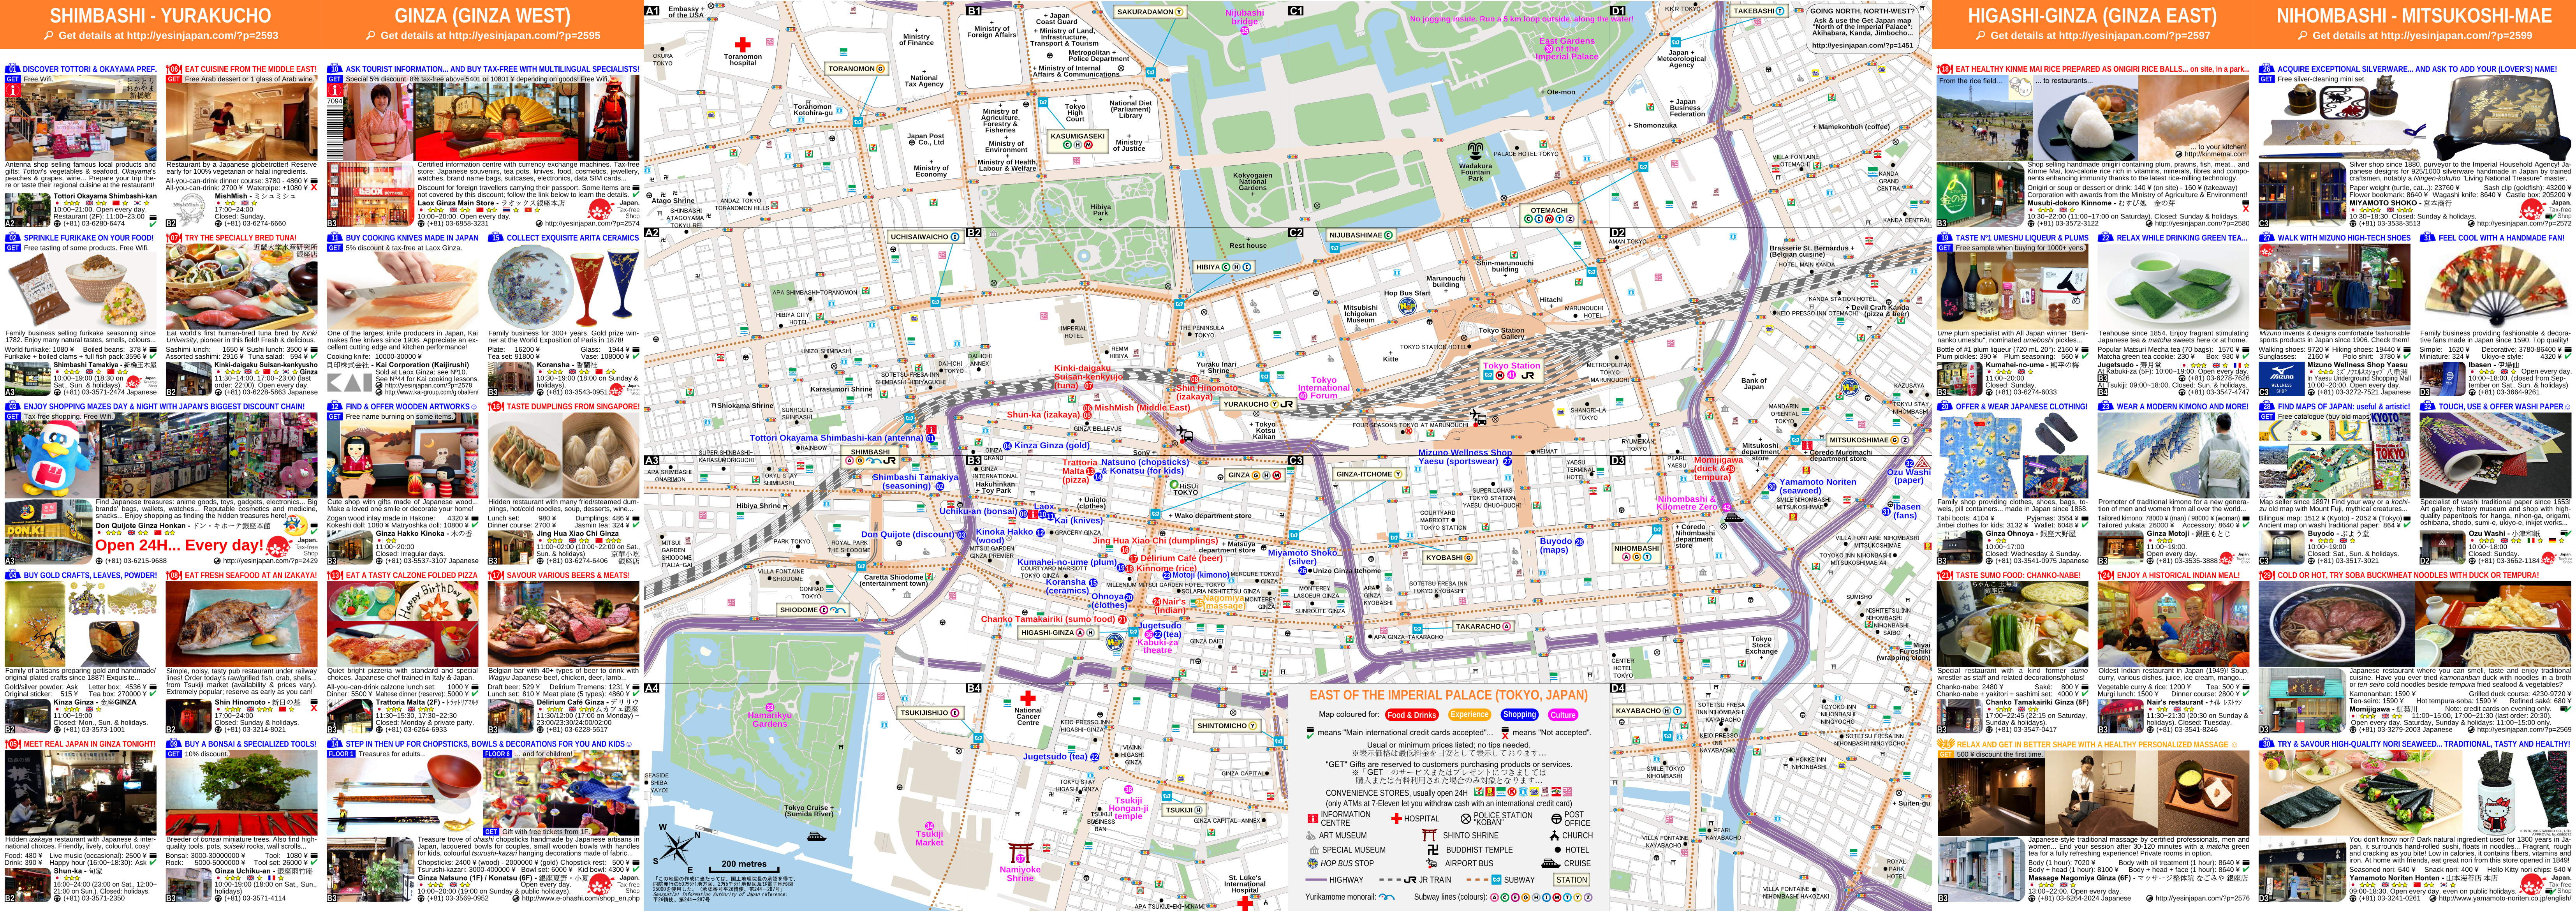 AREA MAPS OF JAPAN JIMBOCHO Get Japan All About Tokyo - Japan map area